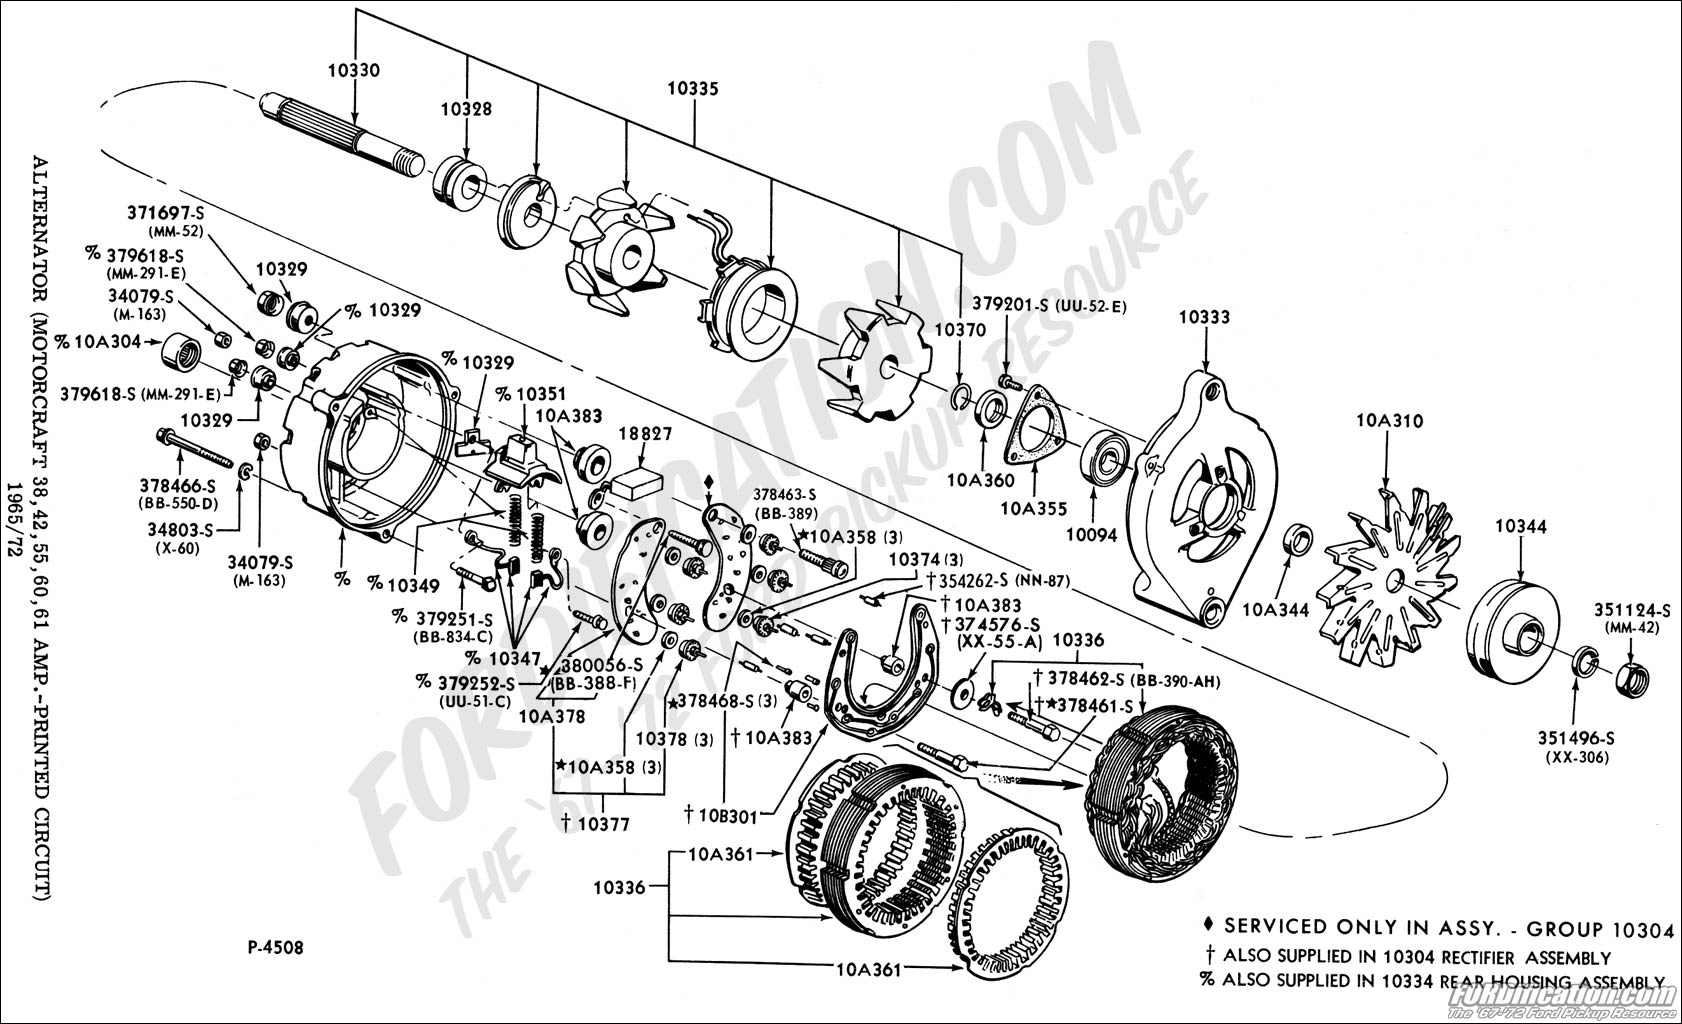 1977 Chevy C10 Alternator Wiring Library Car Diagram Ford Truck Technical Drawings And Schematics Section I Electrical